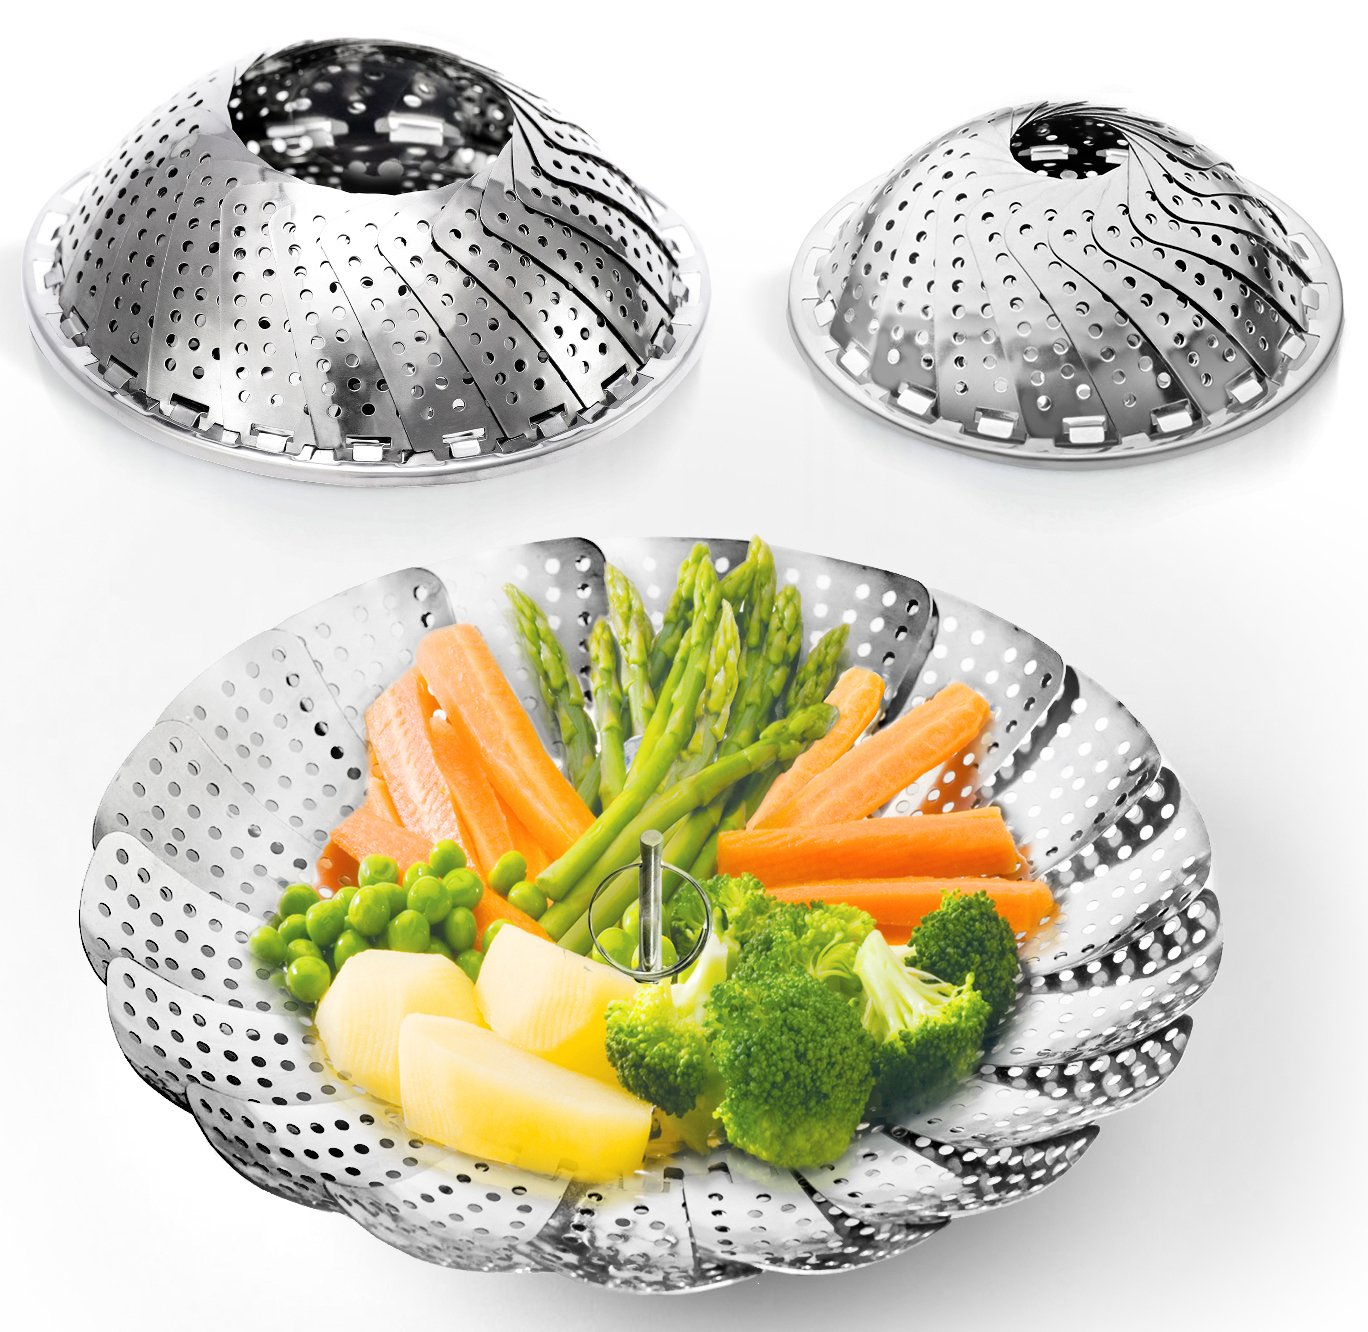 FOUR-PACK (2 Large and 2 Standard) Vegetable Steamer Baskets Set - 2x Steamer Inserts for Instant Pot + Safety Tool - 100% Stainless Steel - Instant Pot and Pressure Cooker Accessories